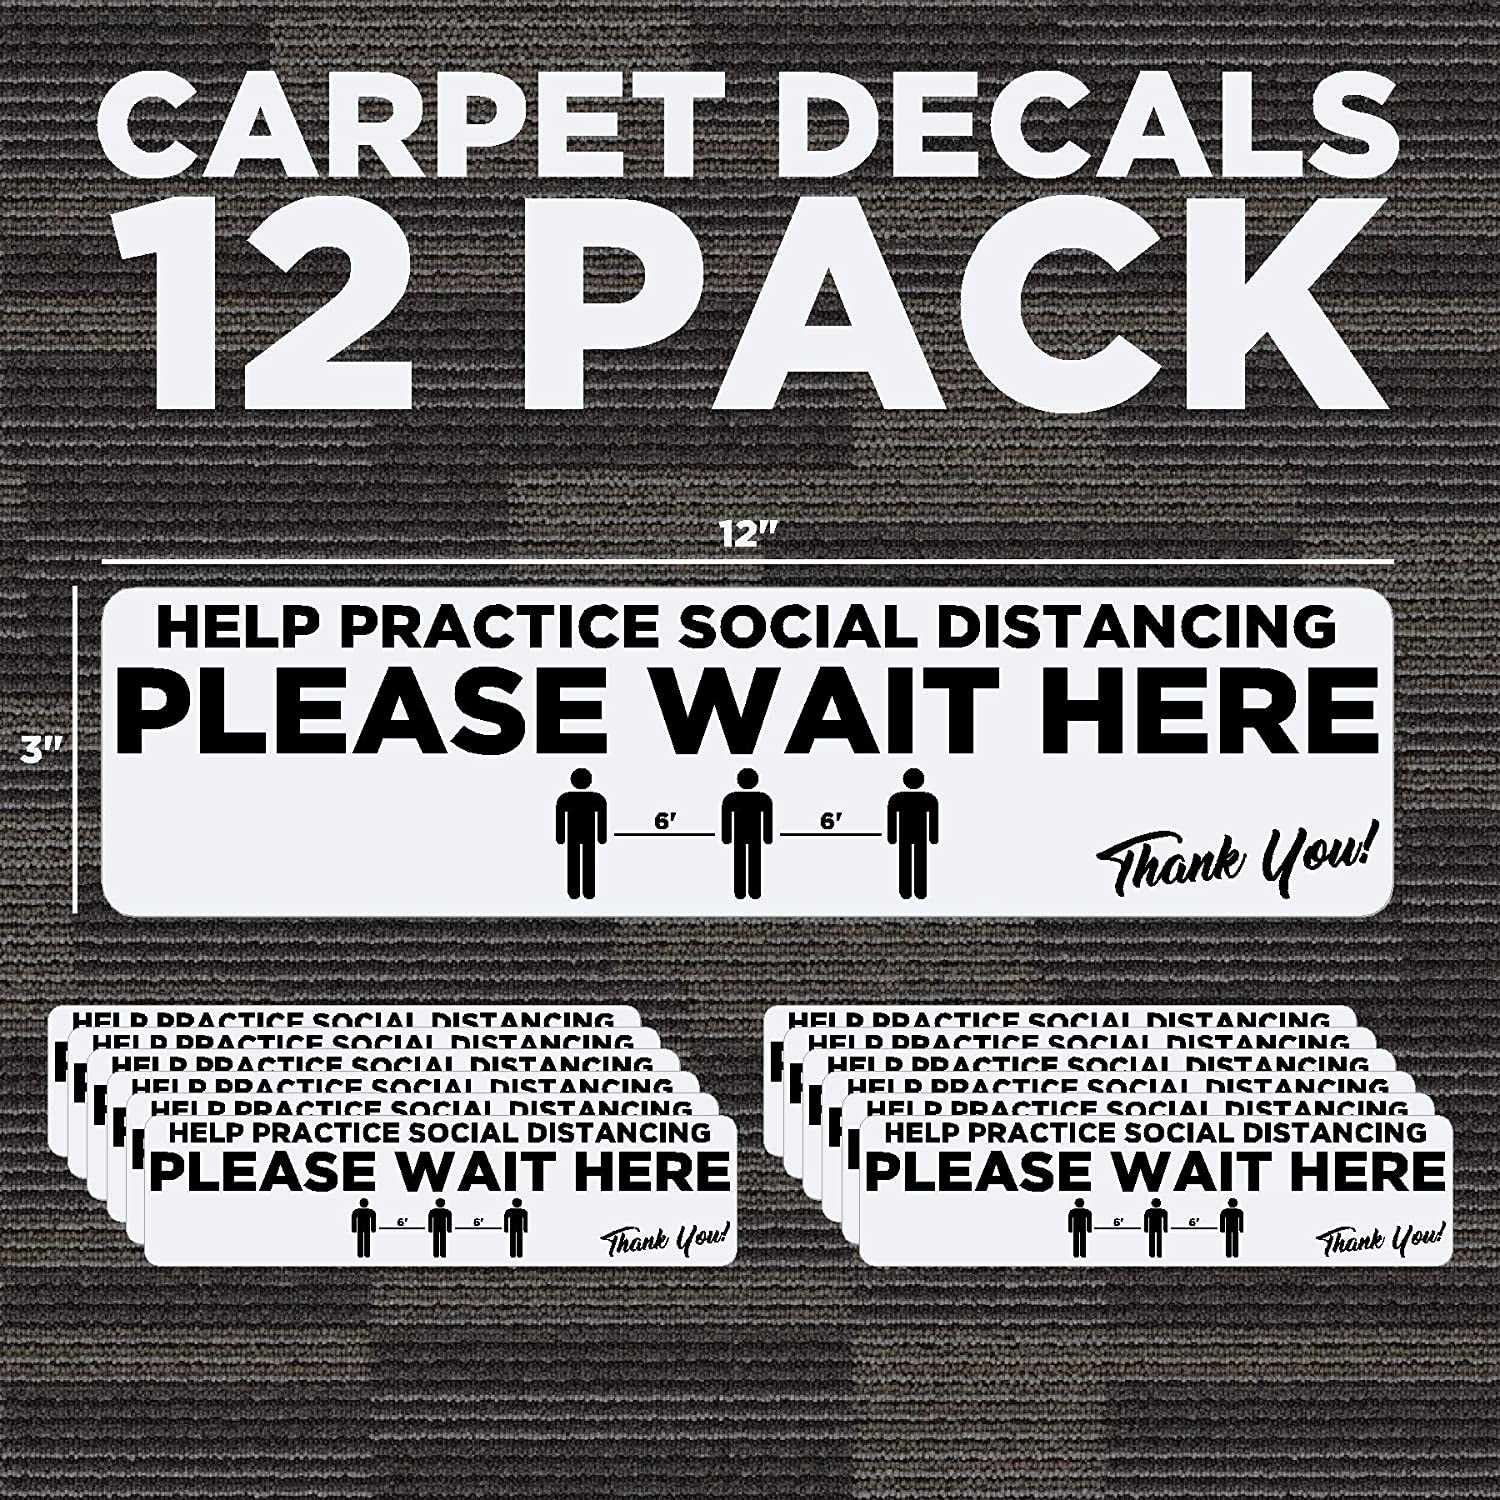 Made in The U.S.A. 6ft Distance Markers Removable Carpet Decals for Social Distancing 3x12 Pack of 12